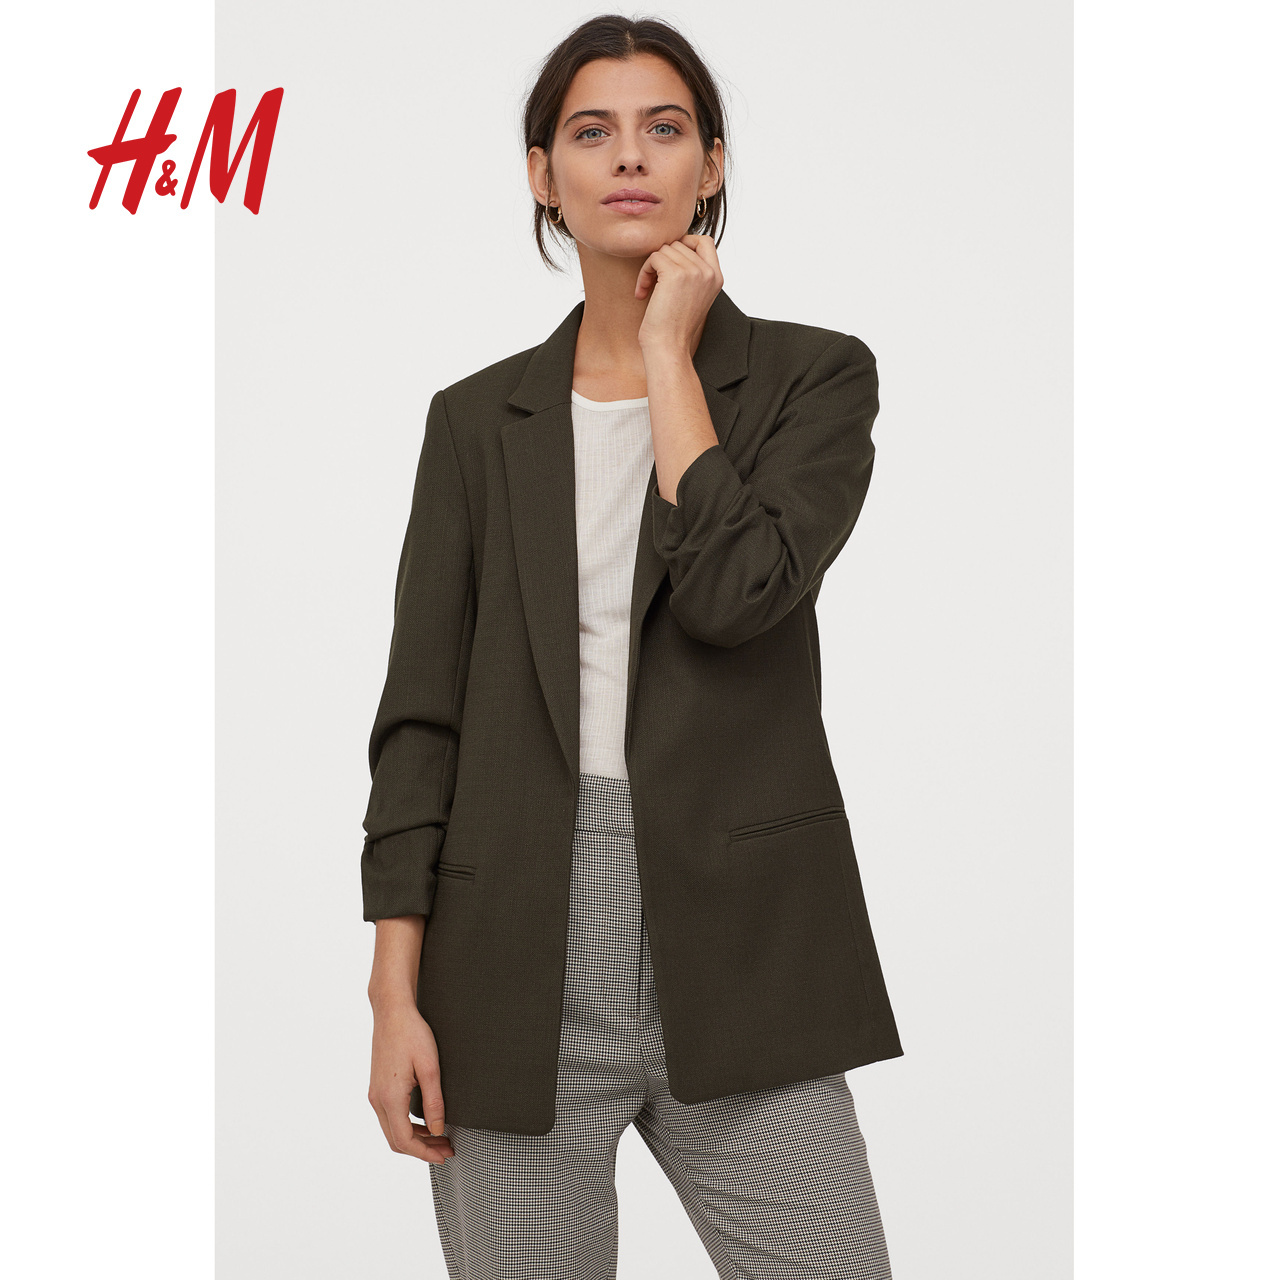 HM women's spring 2020 new suit coat women's spring and autumn seven sleeve straight tube suit women's top 0839332